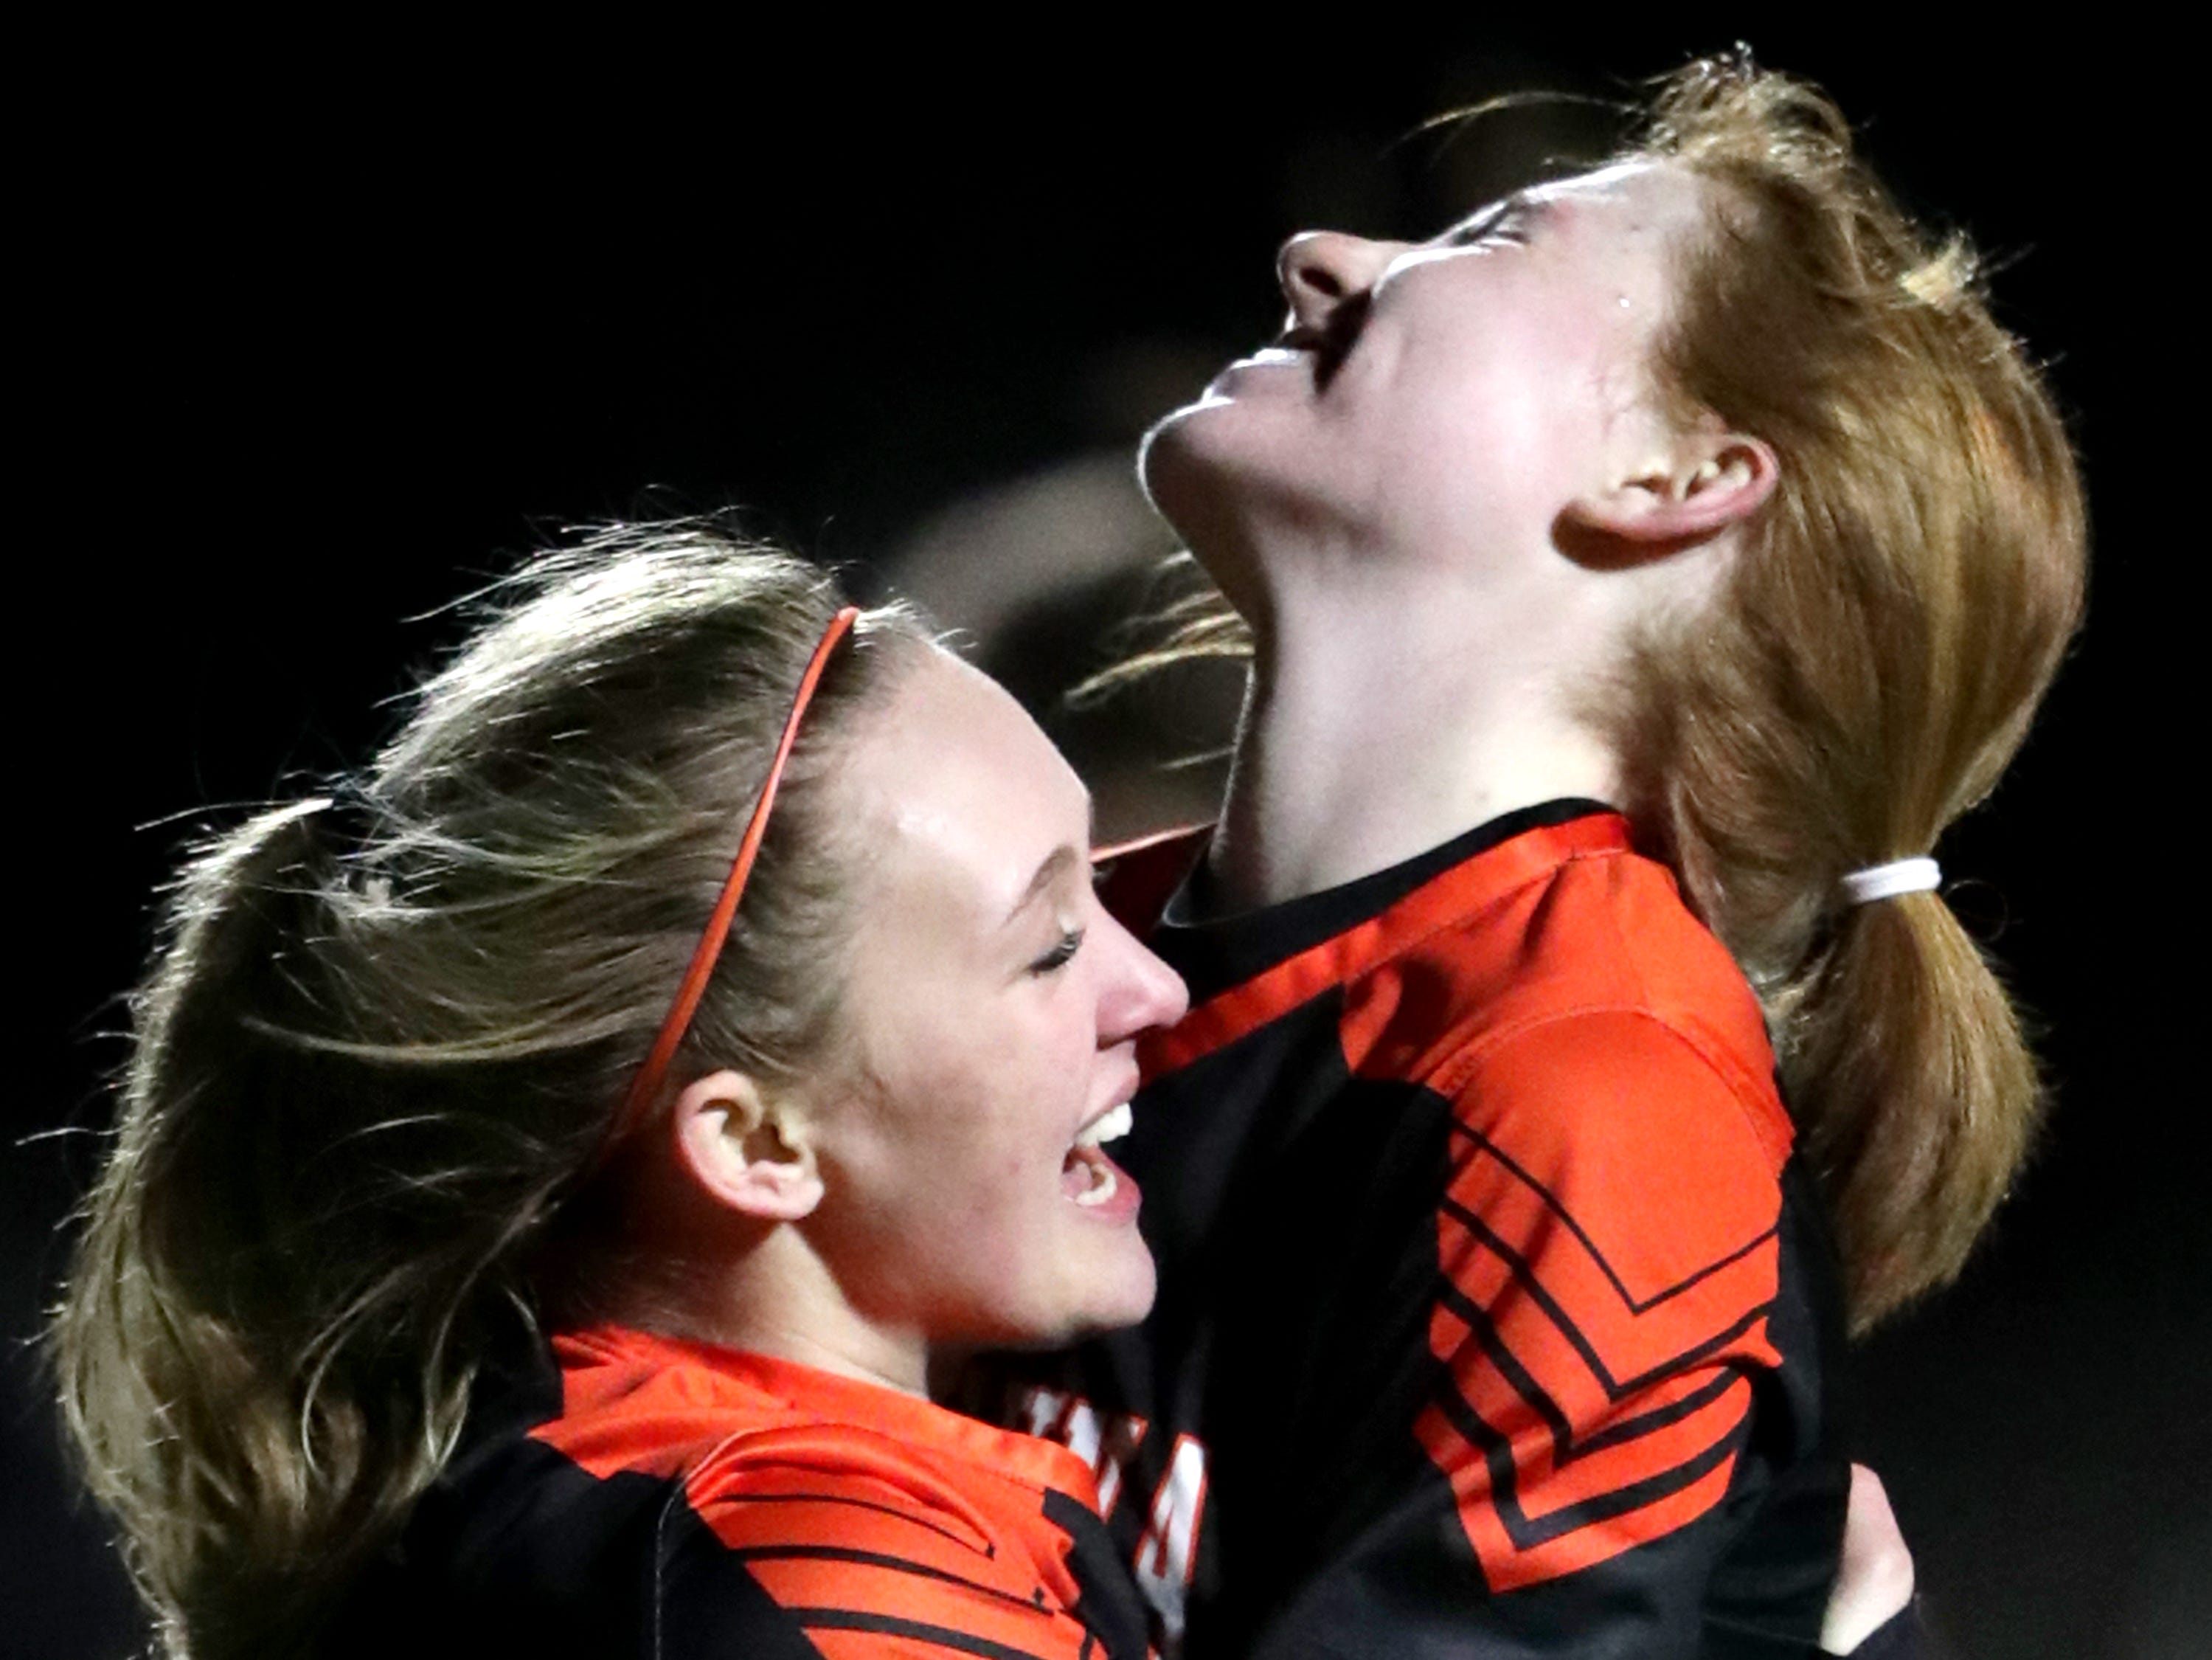 Kaukauna High School's #6 Meredith Schaller, left, and #13 Caitlyn  D'Amico against Clintonville High School during their girls soccer game on Thursday, March 27, 2019, in Kaukauna, Wis. Kaukauna defeated Clintonville 10 to 0.Wm. Glasheen/USA TODAY NETWORK-Wisconsin.